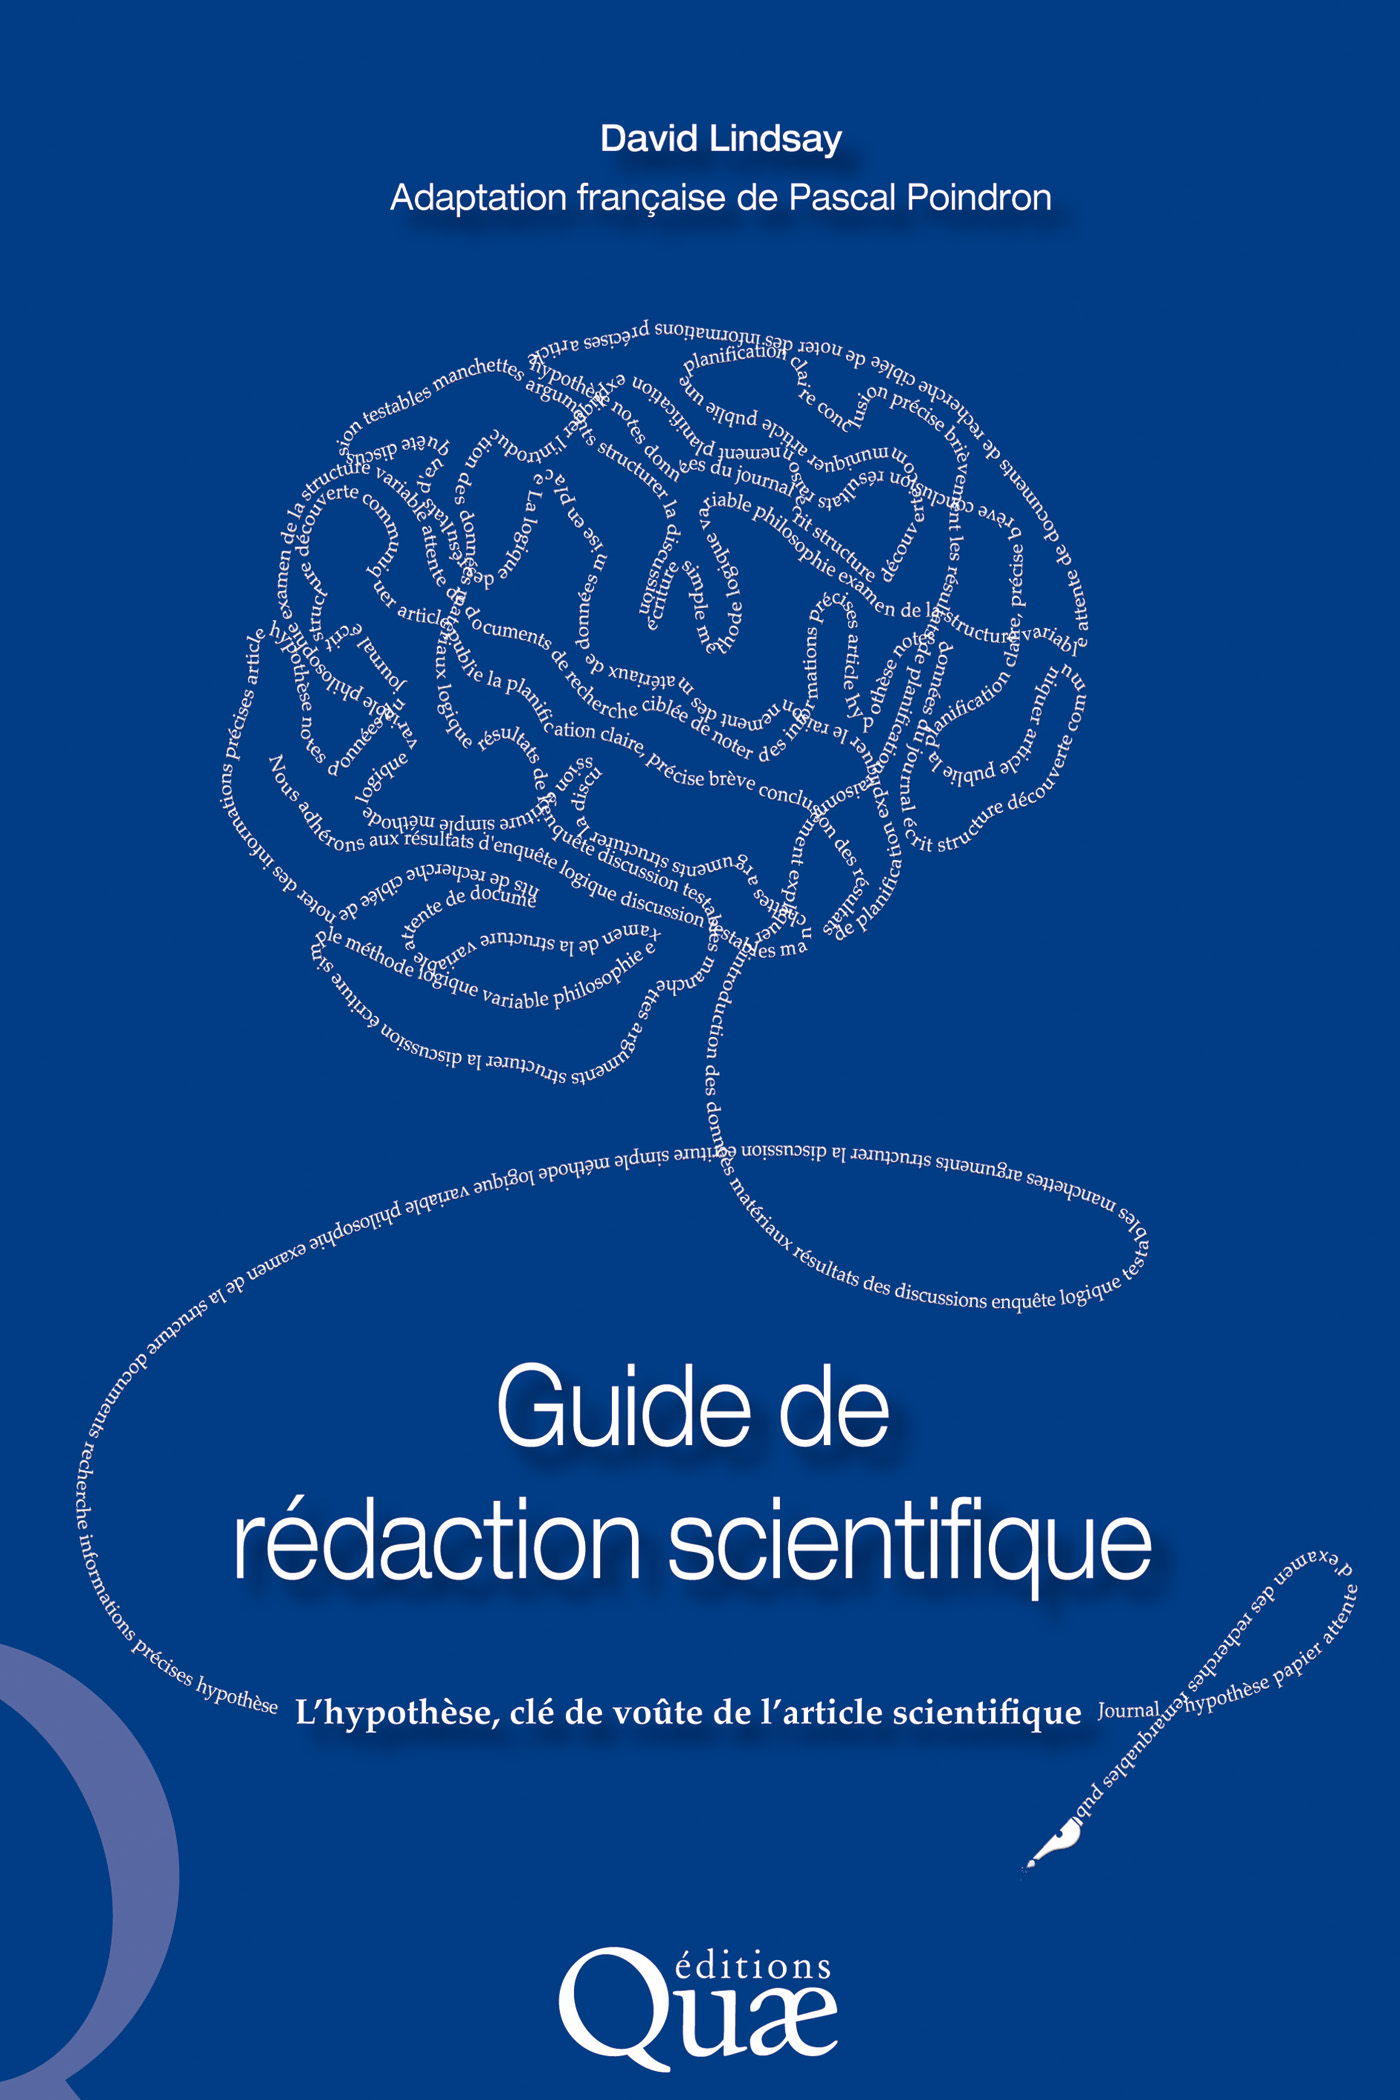 Guide de rédaction scientifique